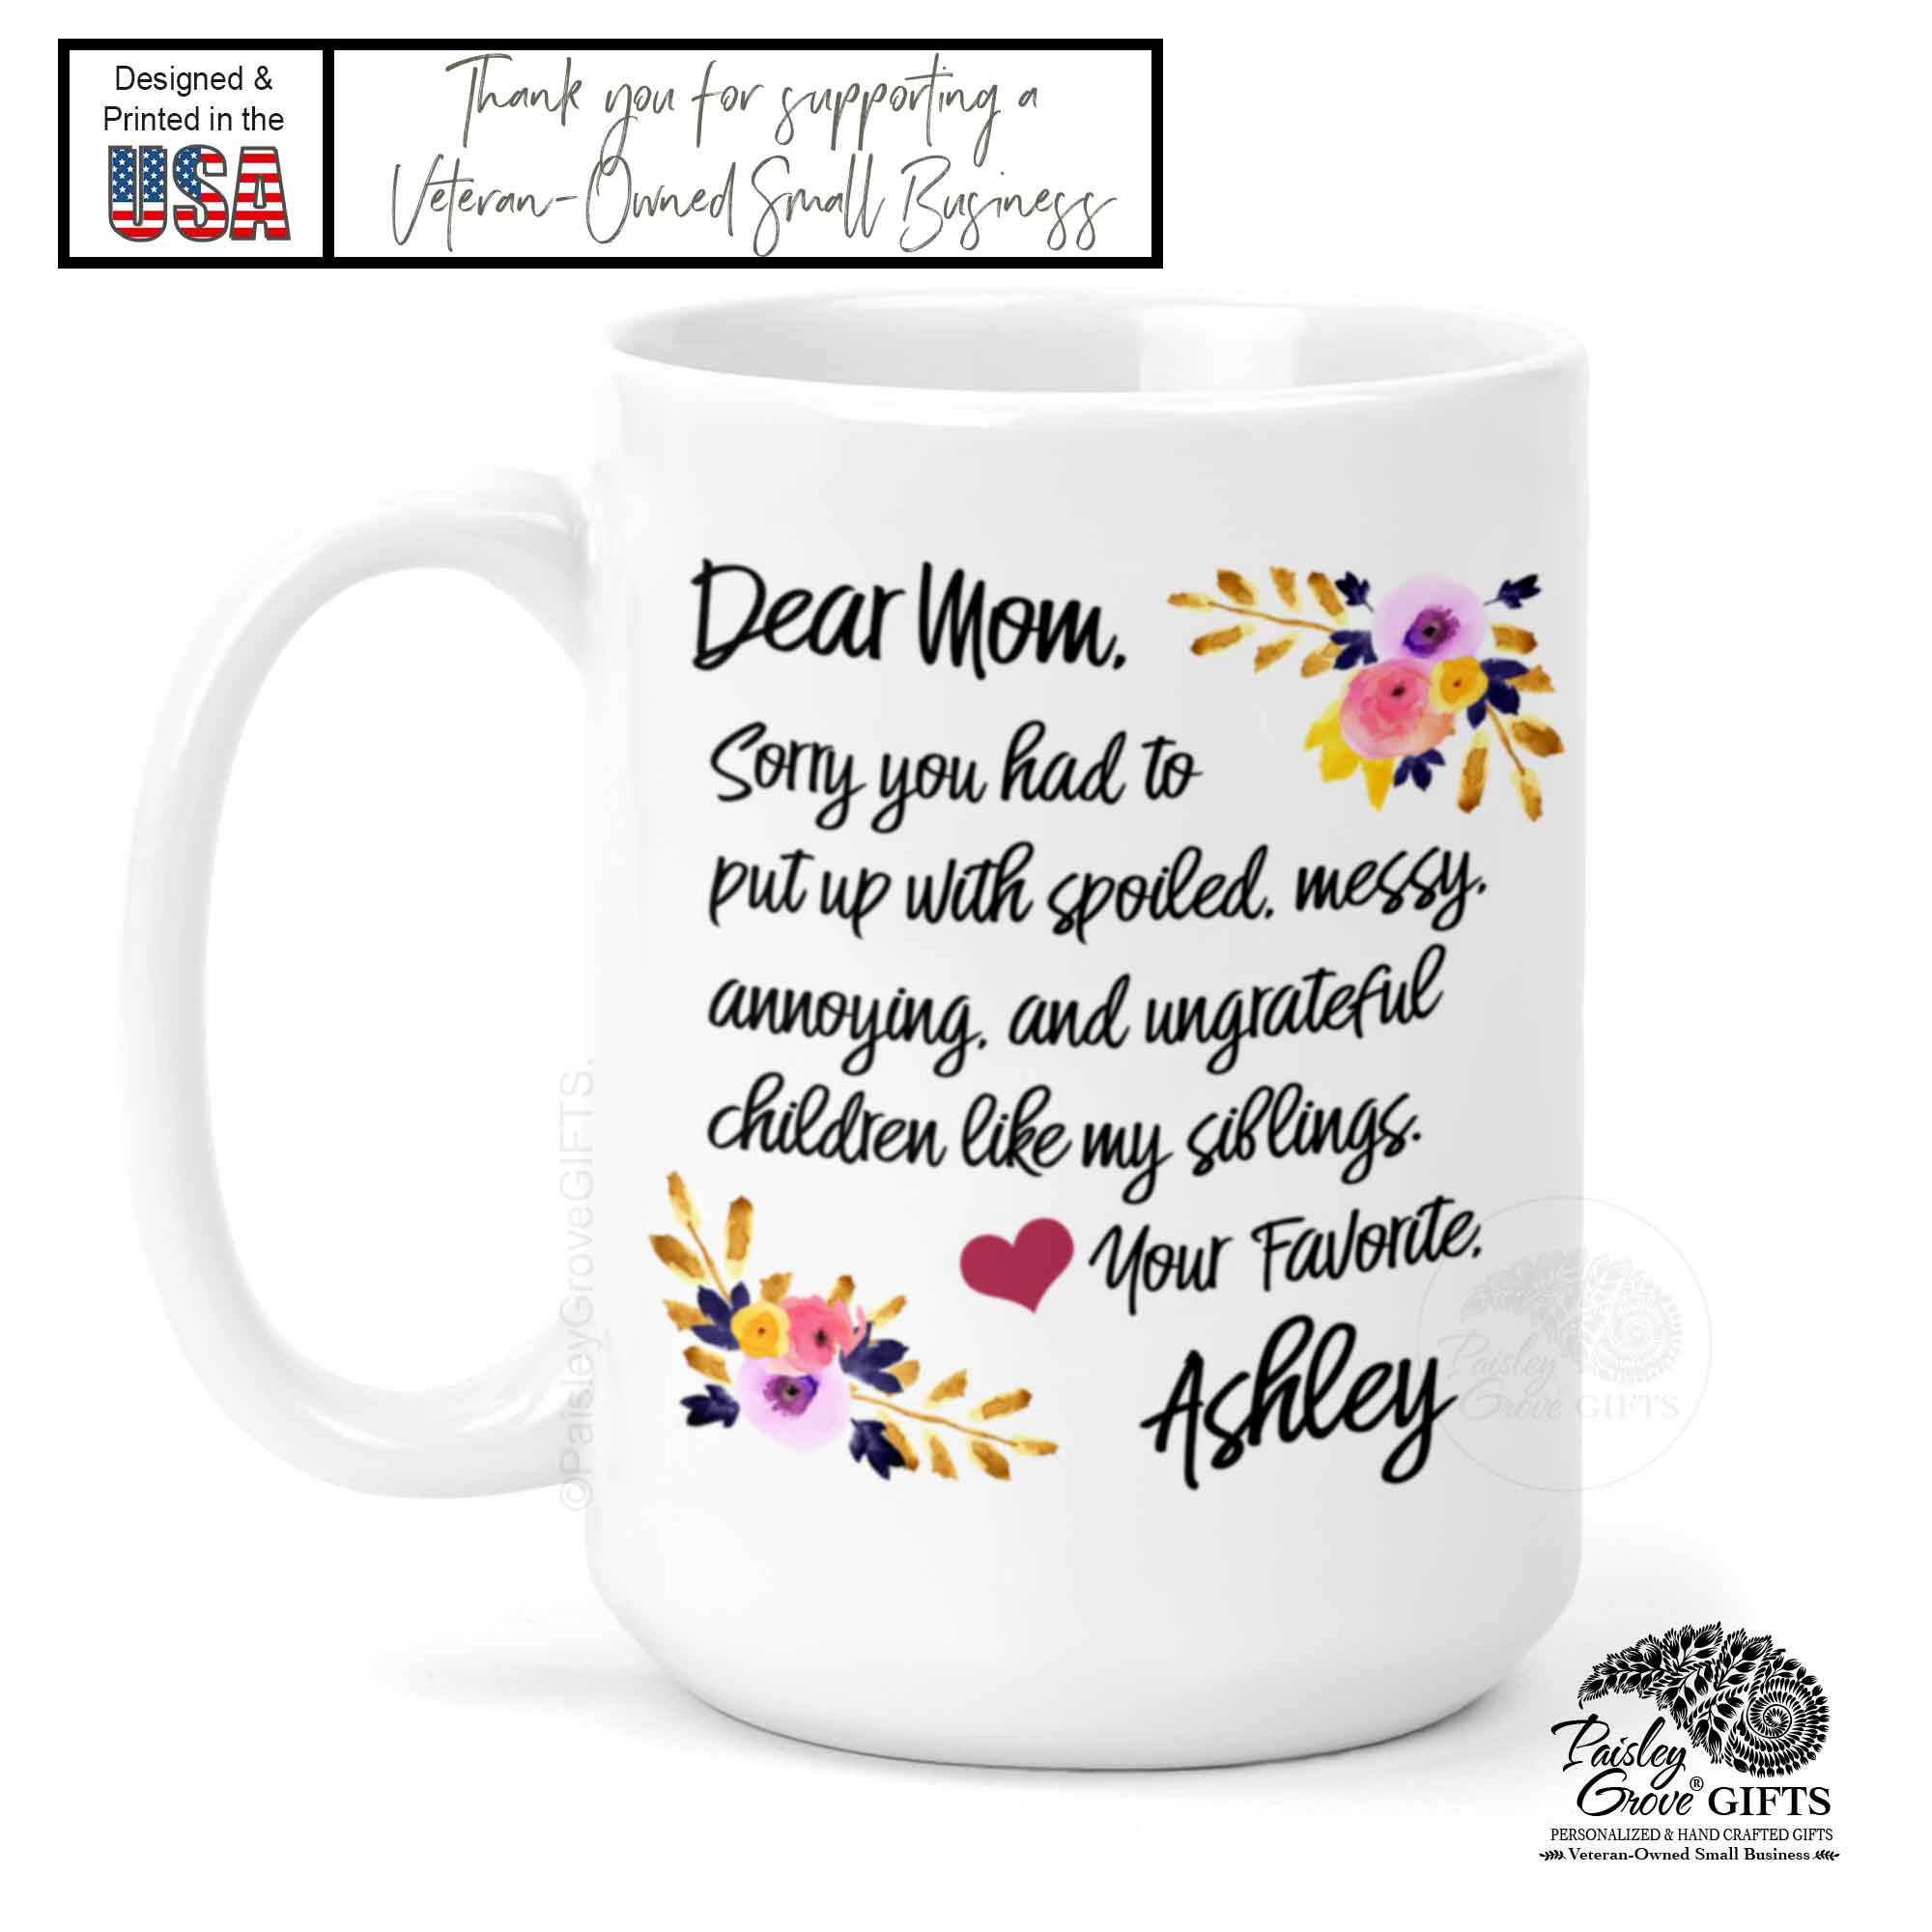 CopyrightPaisleyGroveGIFTS P011a Personalized Funny Coffee Mug from Mom from daughter is printed in the USA